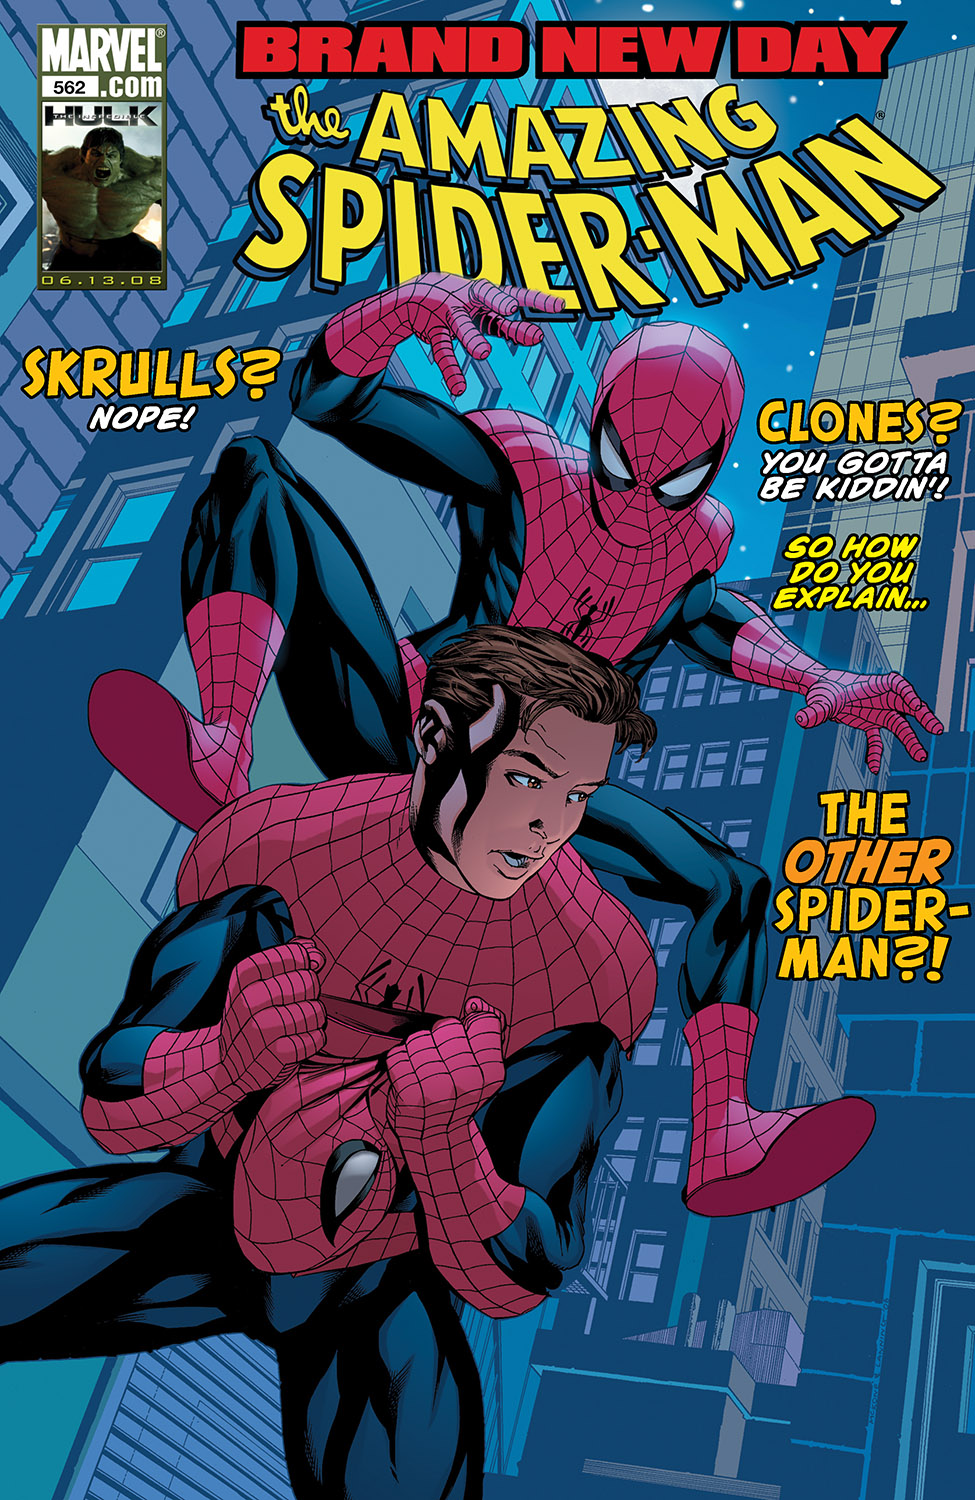 Amazing Spider-Man (1999) #562